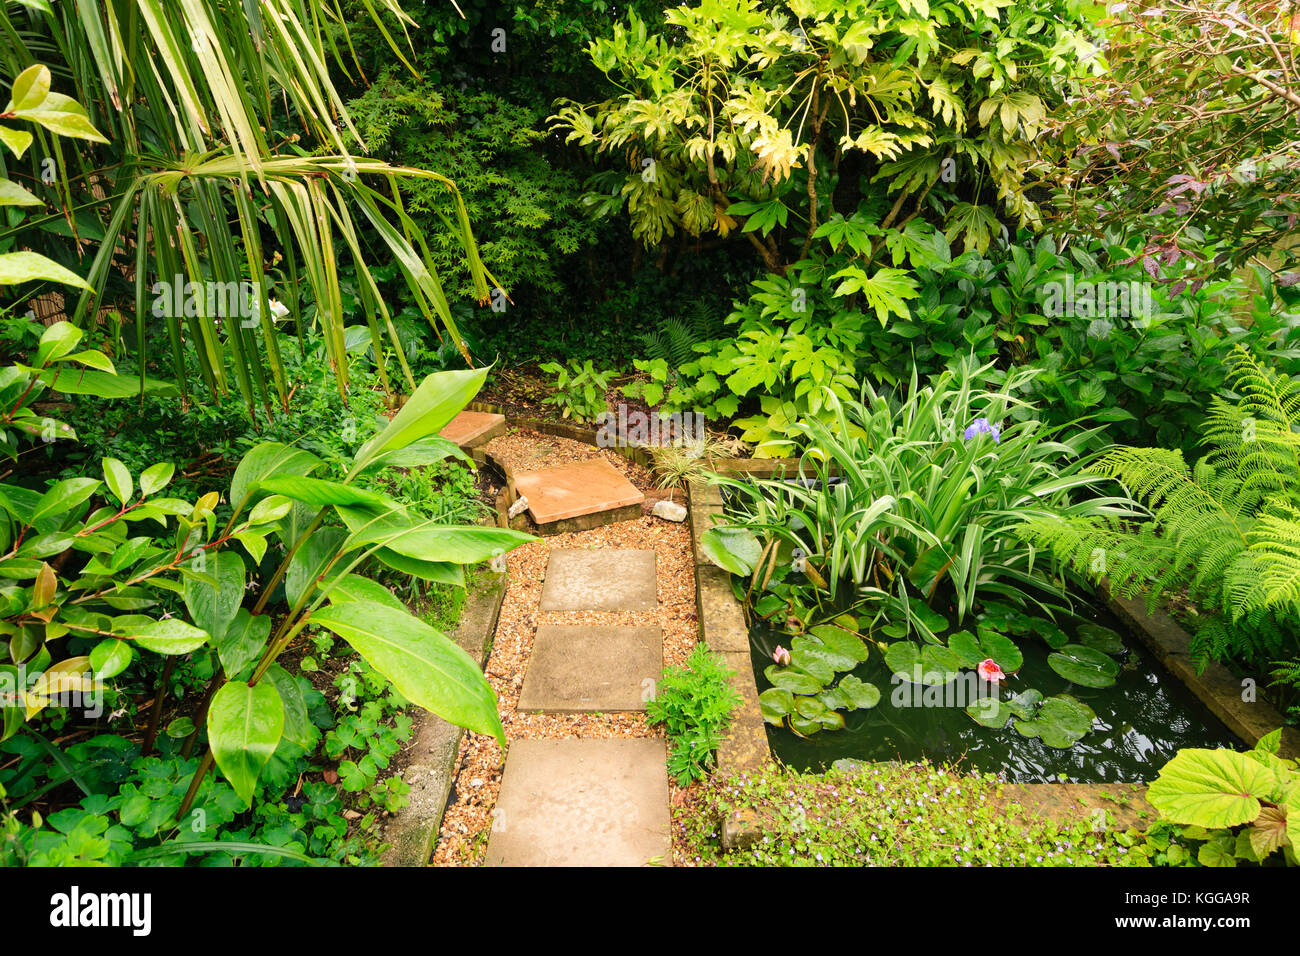 Ornamental garden pond uk stock photos ornamental garden for Ornamental garden ponds